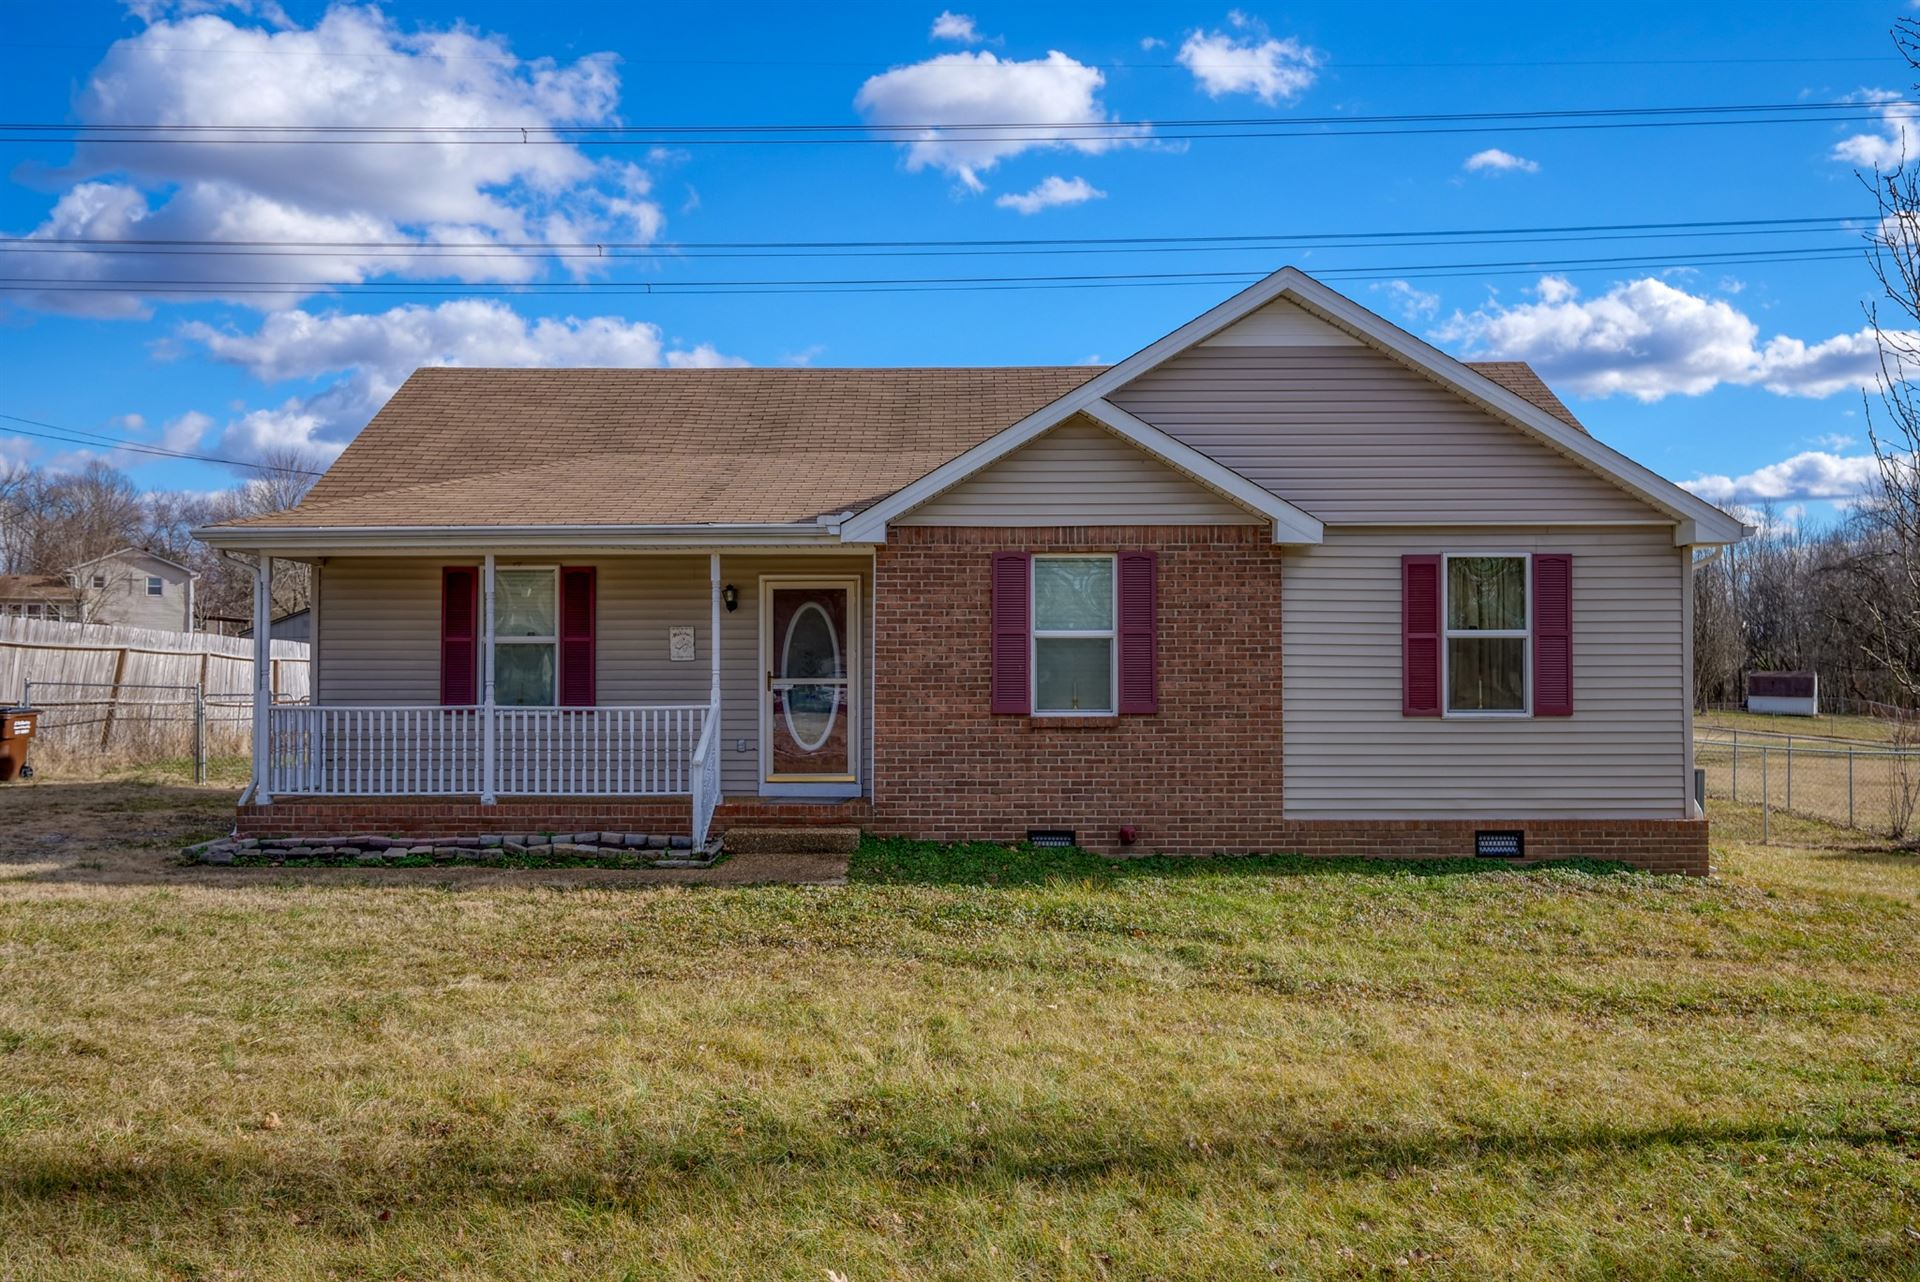 405 Belinda Pkwy, Mount Juliet, TN 37122 - MLS#: 2222269